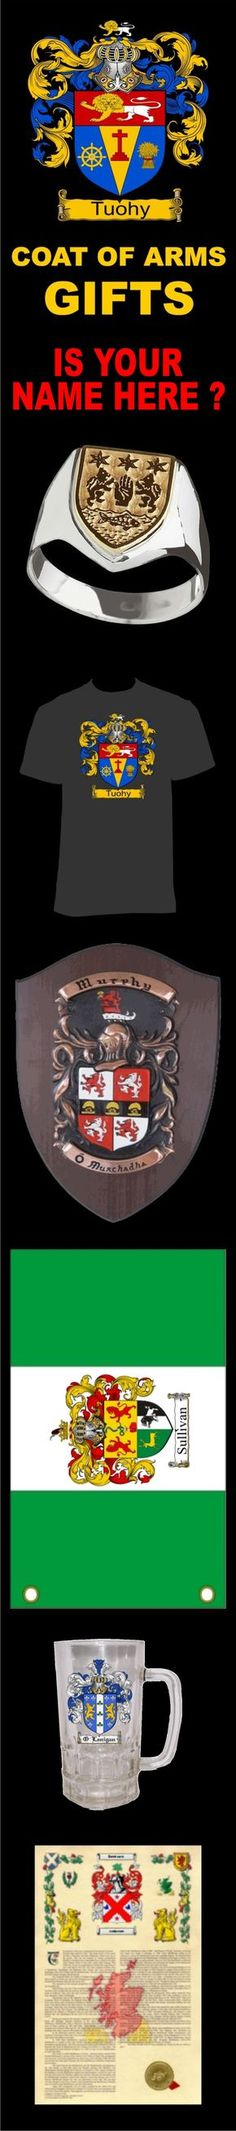 Our coat of arms / family crest store features, flags, rings, plaques, throws, engraved glassware, printed steins, mugs, jewelry, shields, key rings, scrolls, prints, and much more